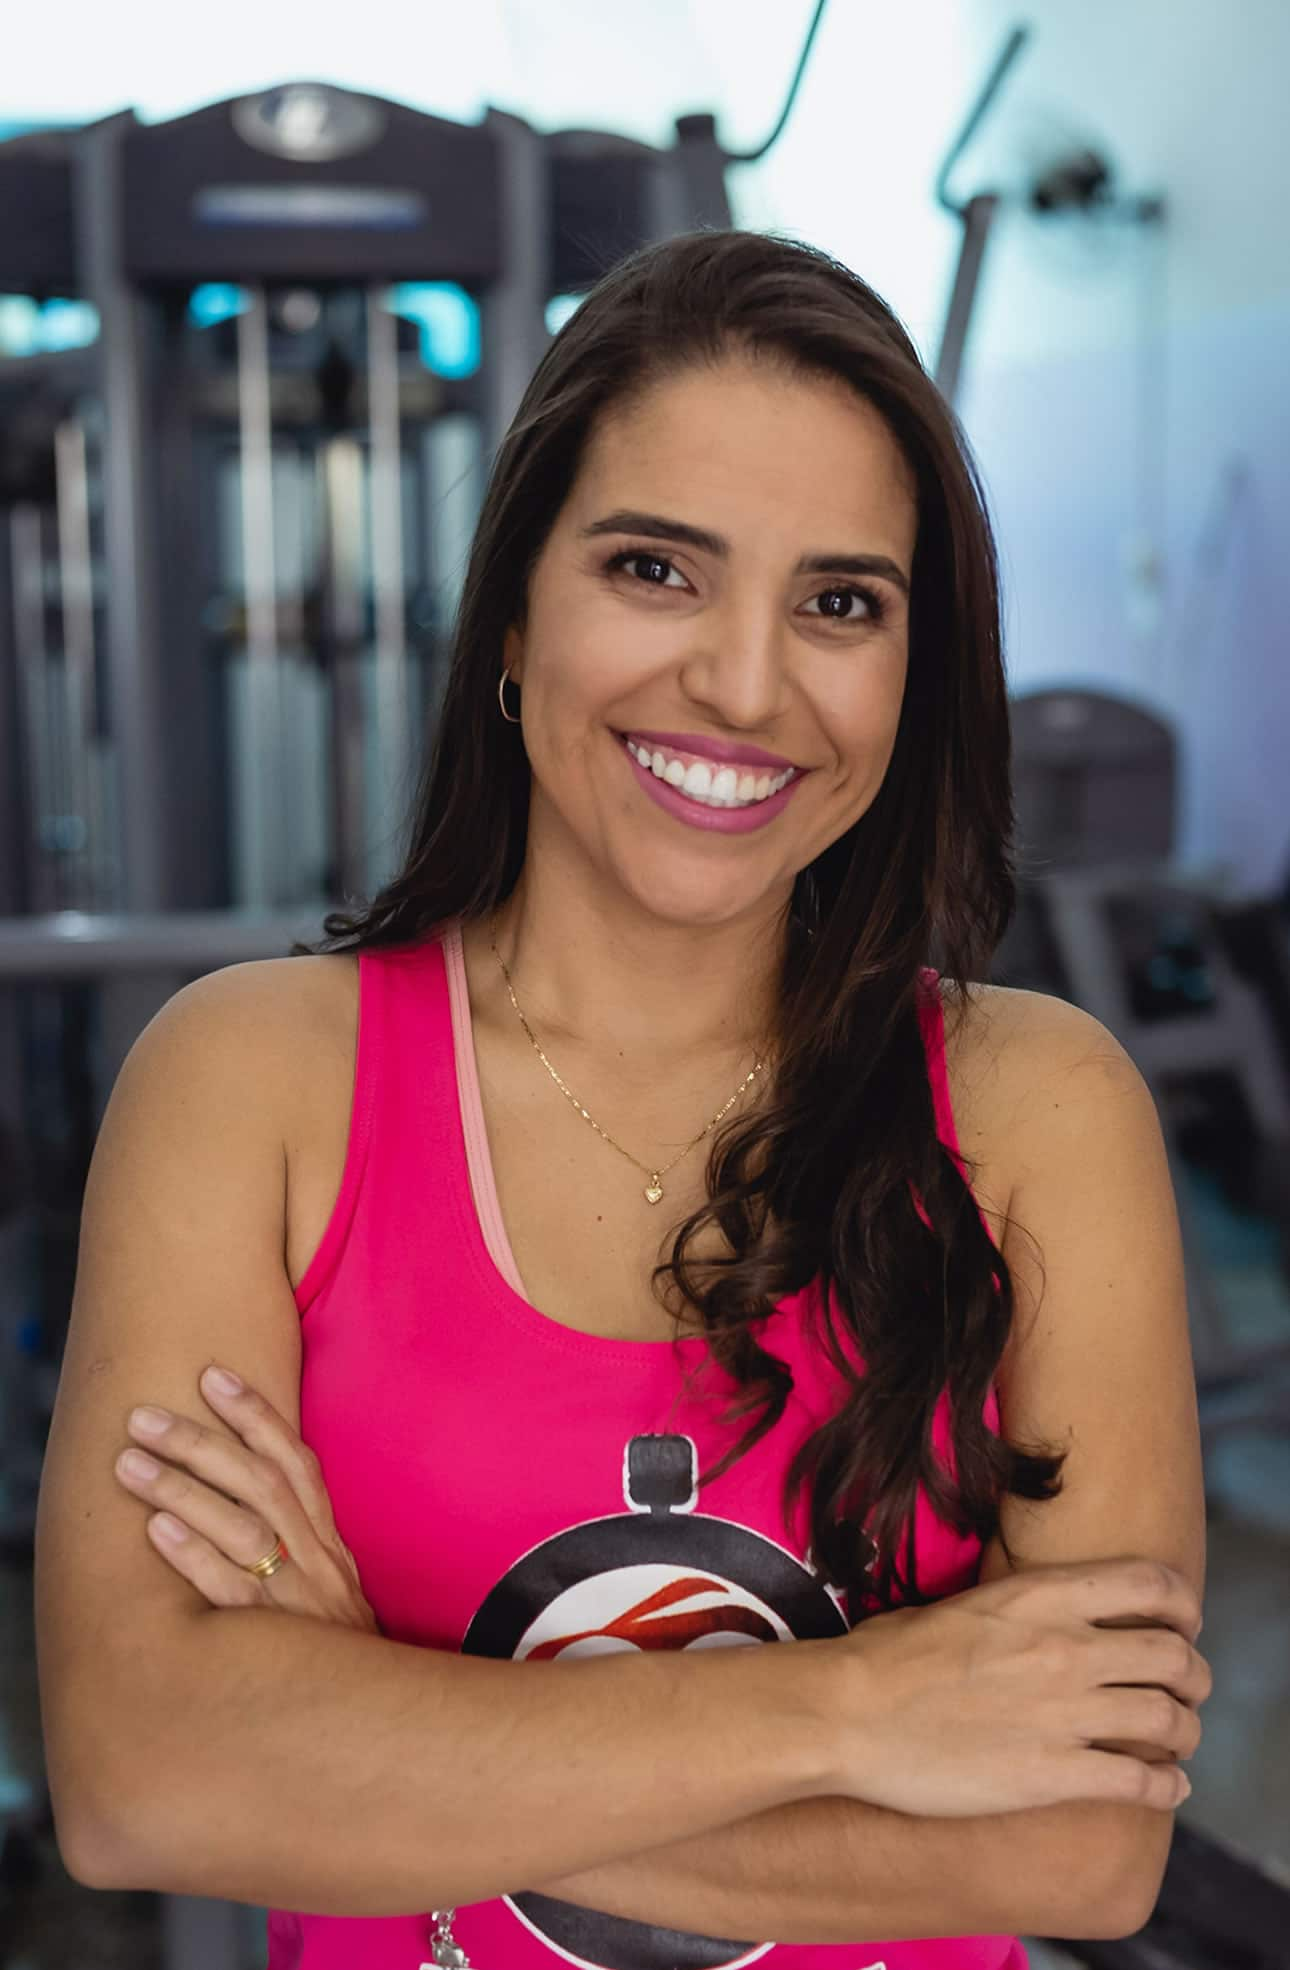 23 09 20 personal trainer pinheirense 7